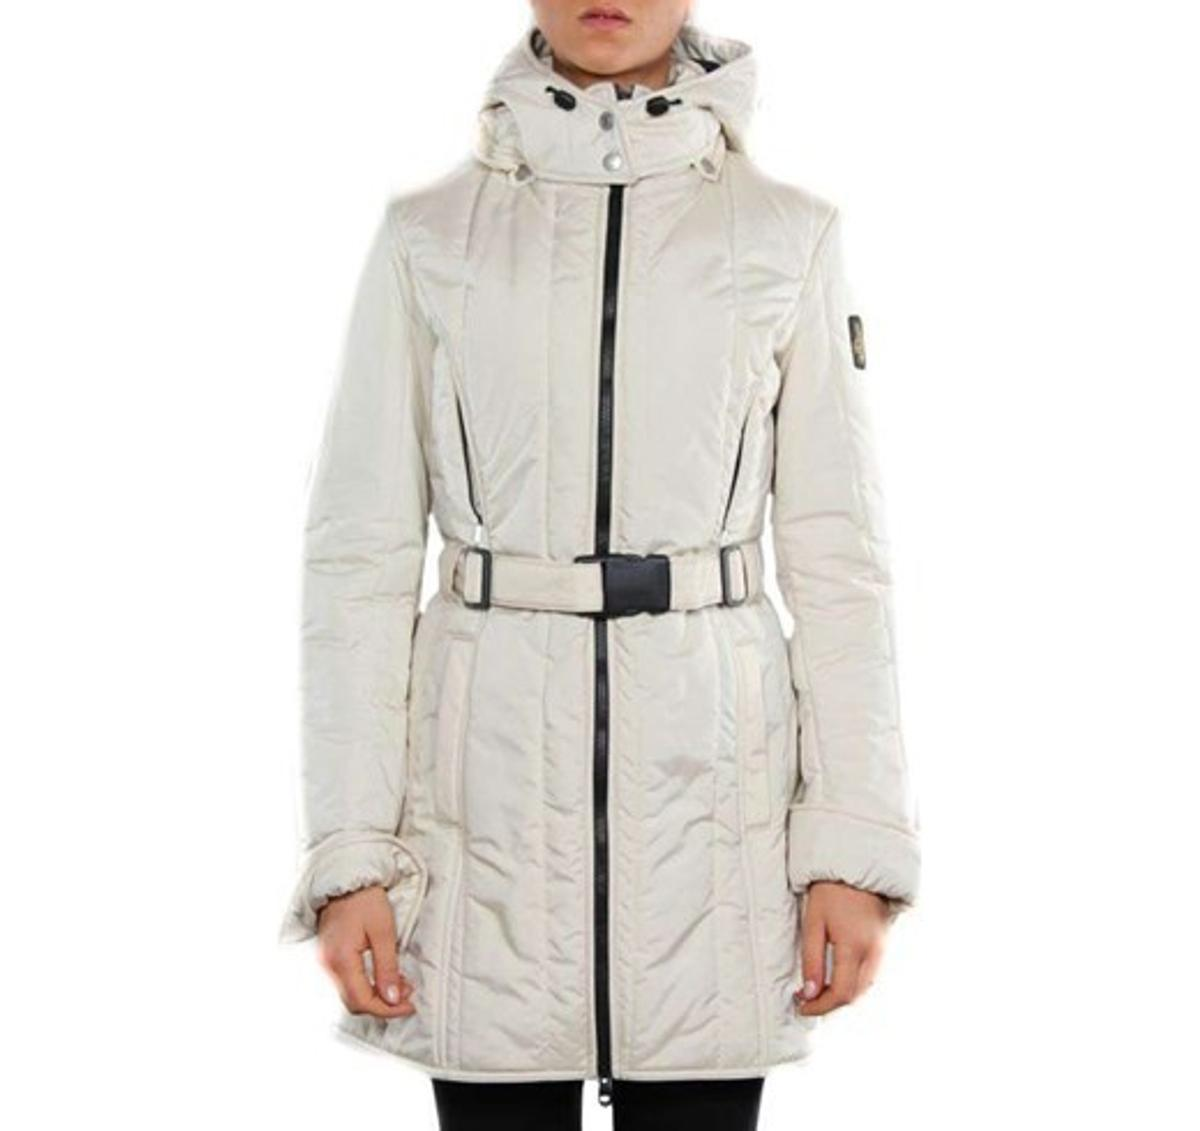 Beige Donna Giacca Giacca Donna Invernale Invernale Giacca Beige vmN8ny0OwP